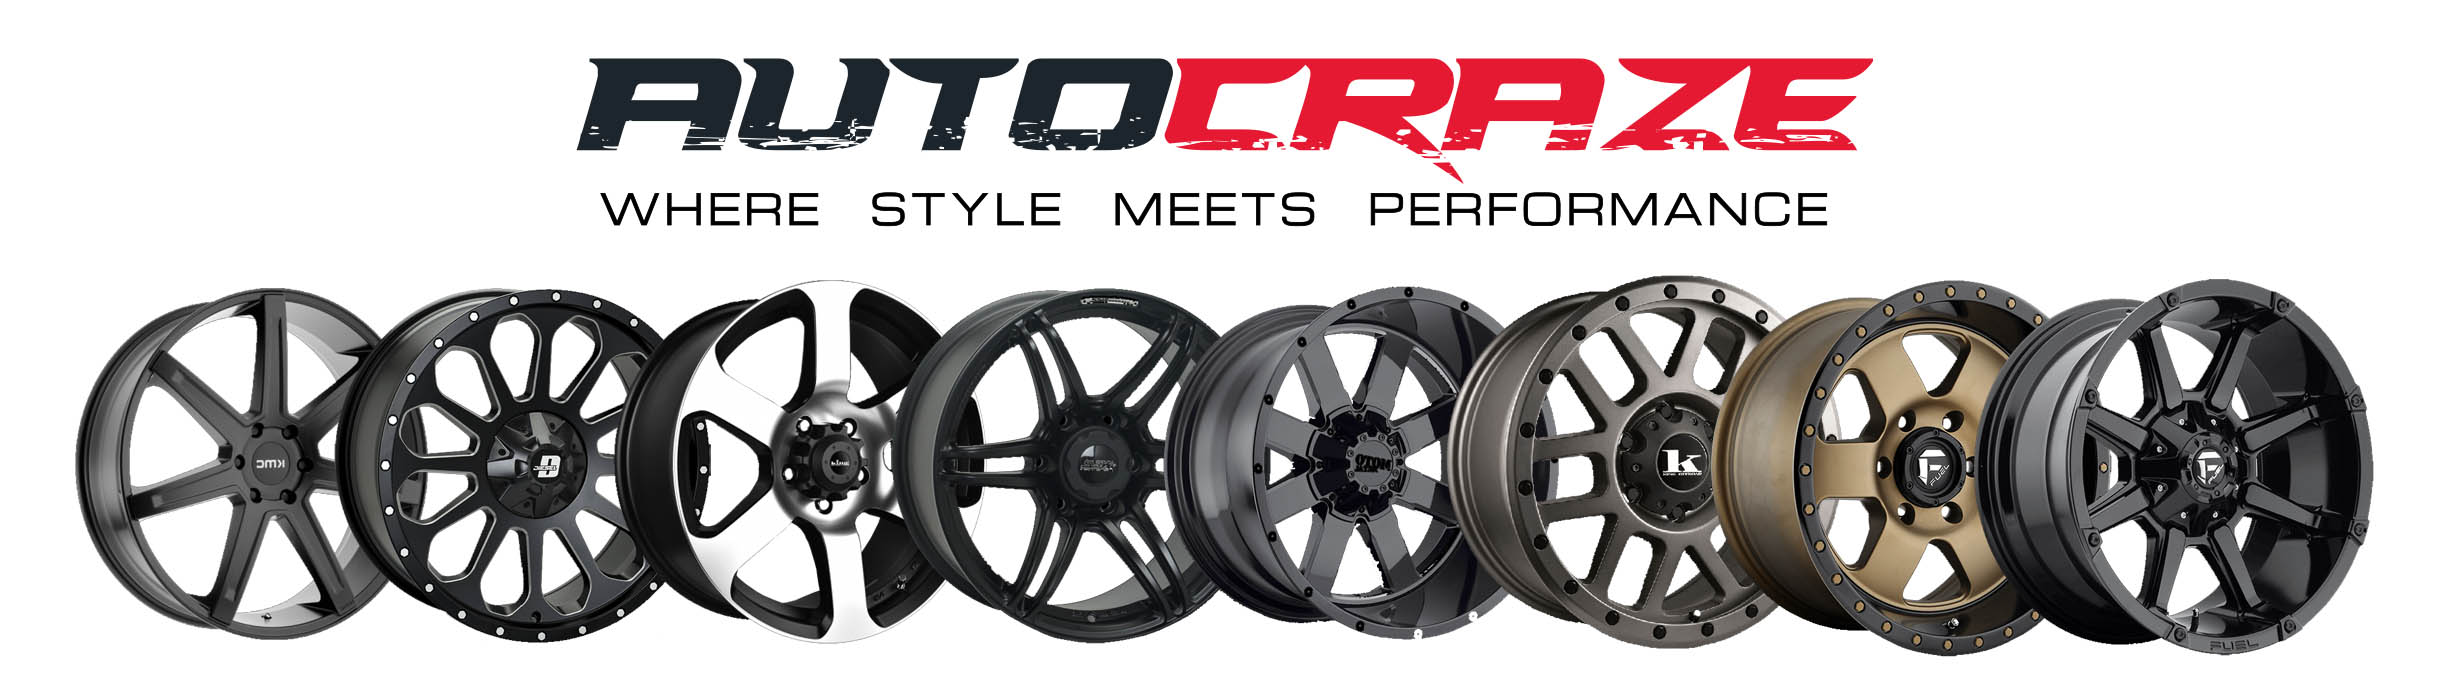 Autocraze logo with Rims Online pictures.